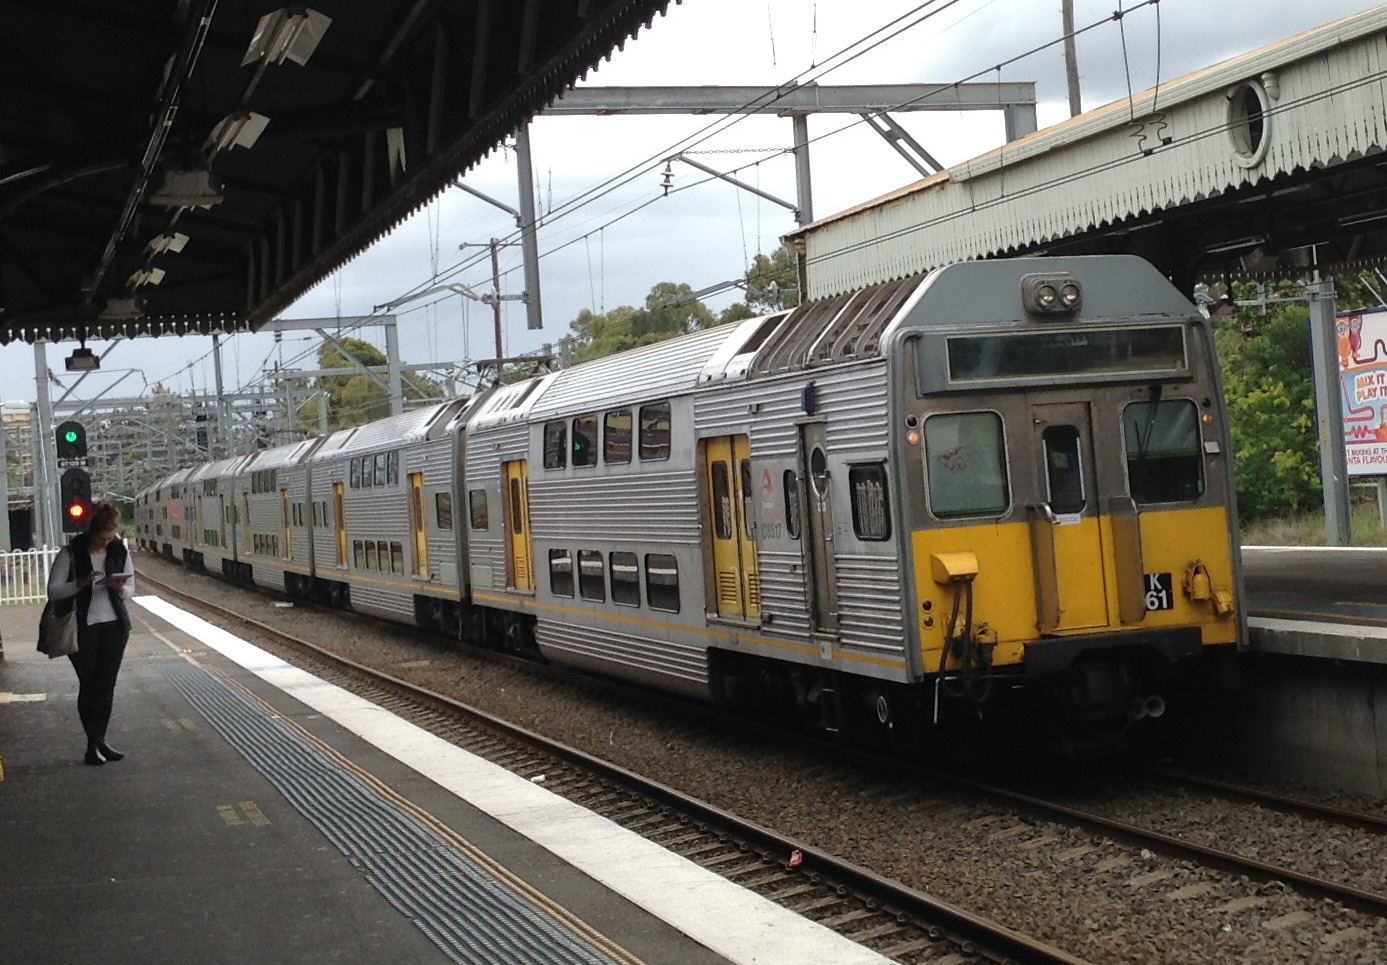 sydney trains - photo #34